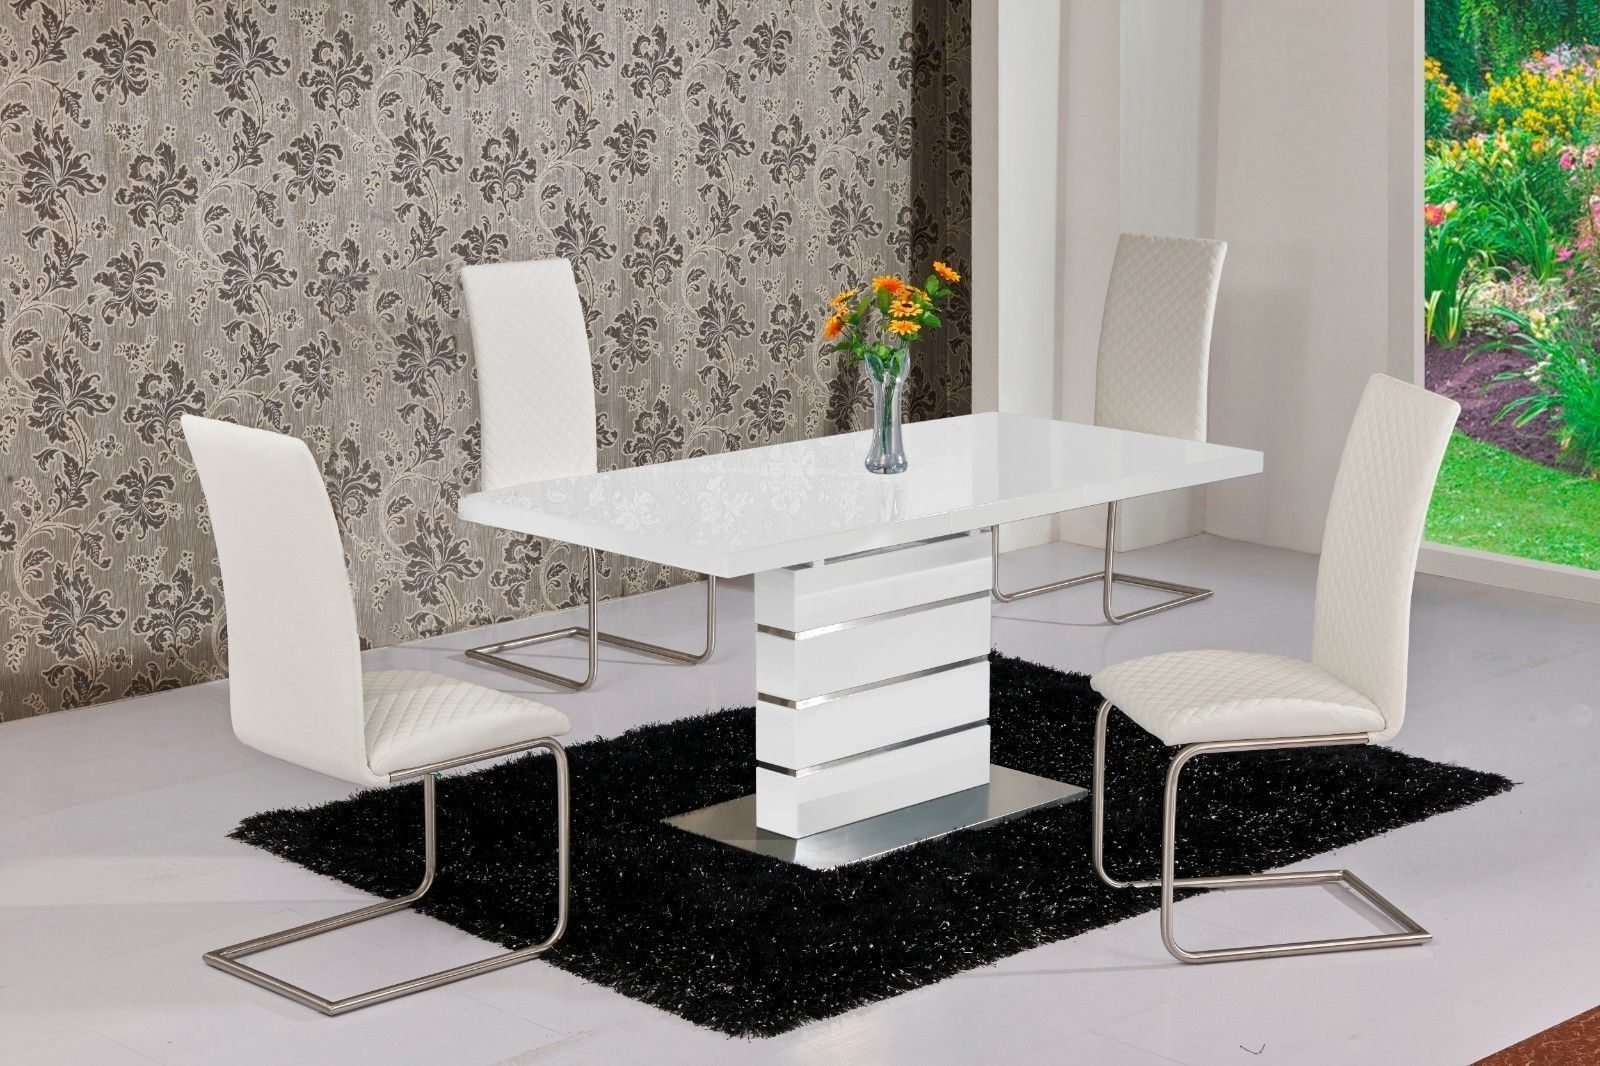 Widely Used Extending Black Dining Tables With Regard To Mace High Gloss Extending 120 160 Dining Table & Chair Set – White (View 10 of 25)